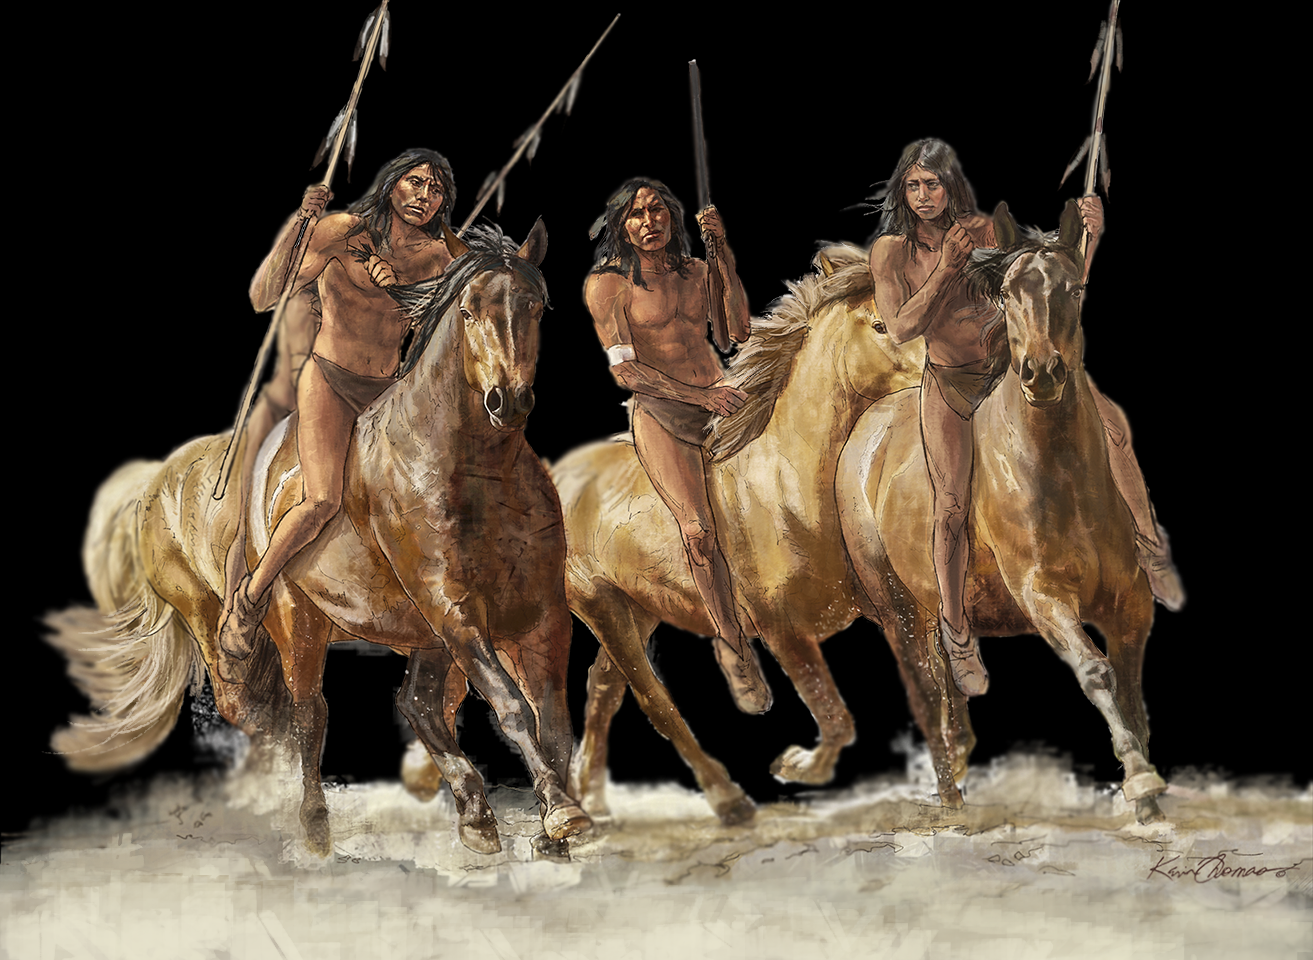 """""""Comanche warriors"""" • Illustration for graphic panel • Tales N' Trails Museum, Nocona, TX. © KT"""